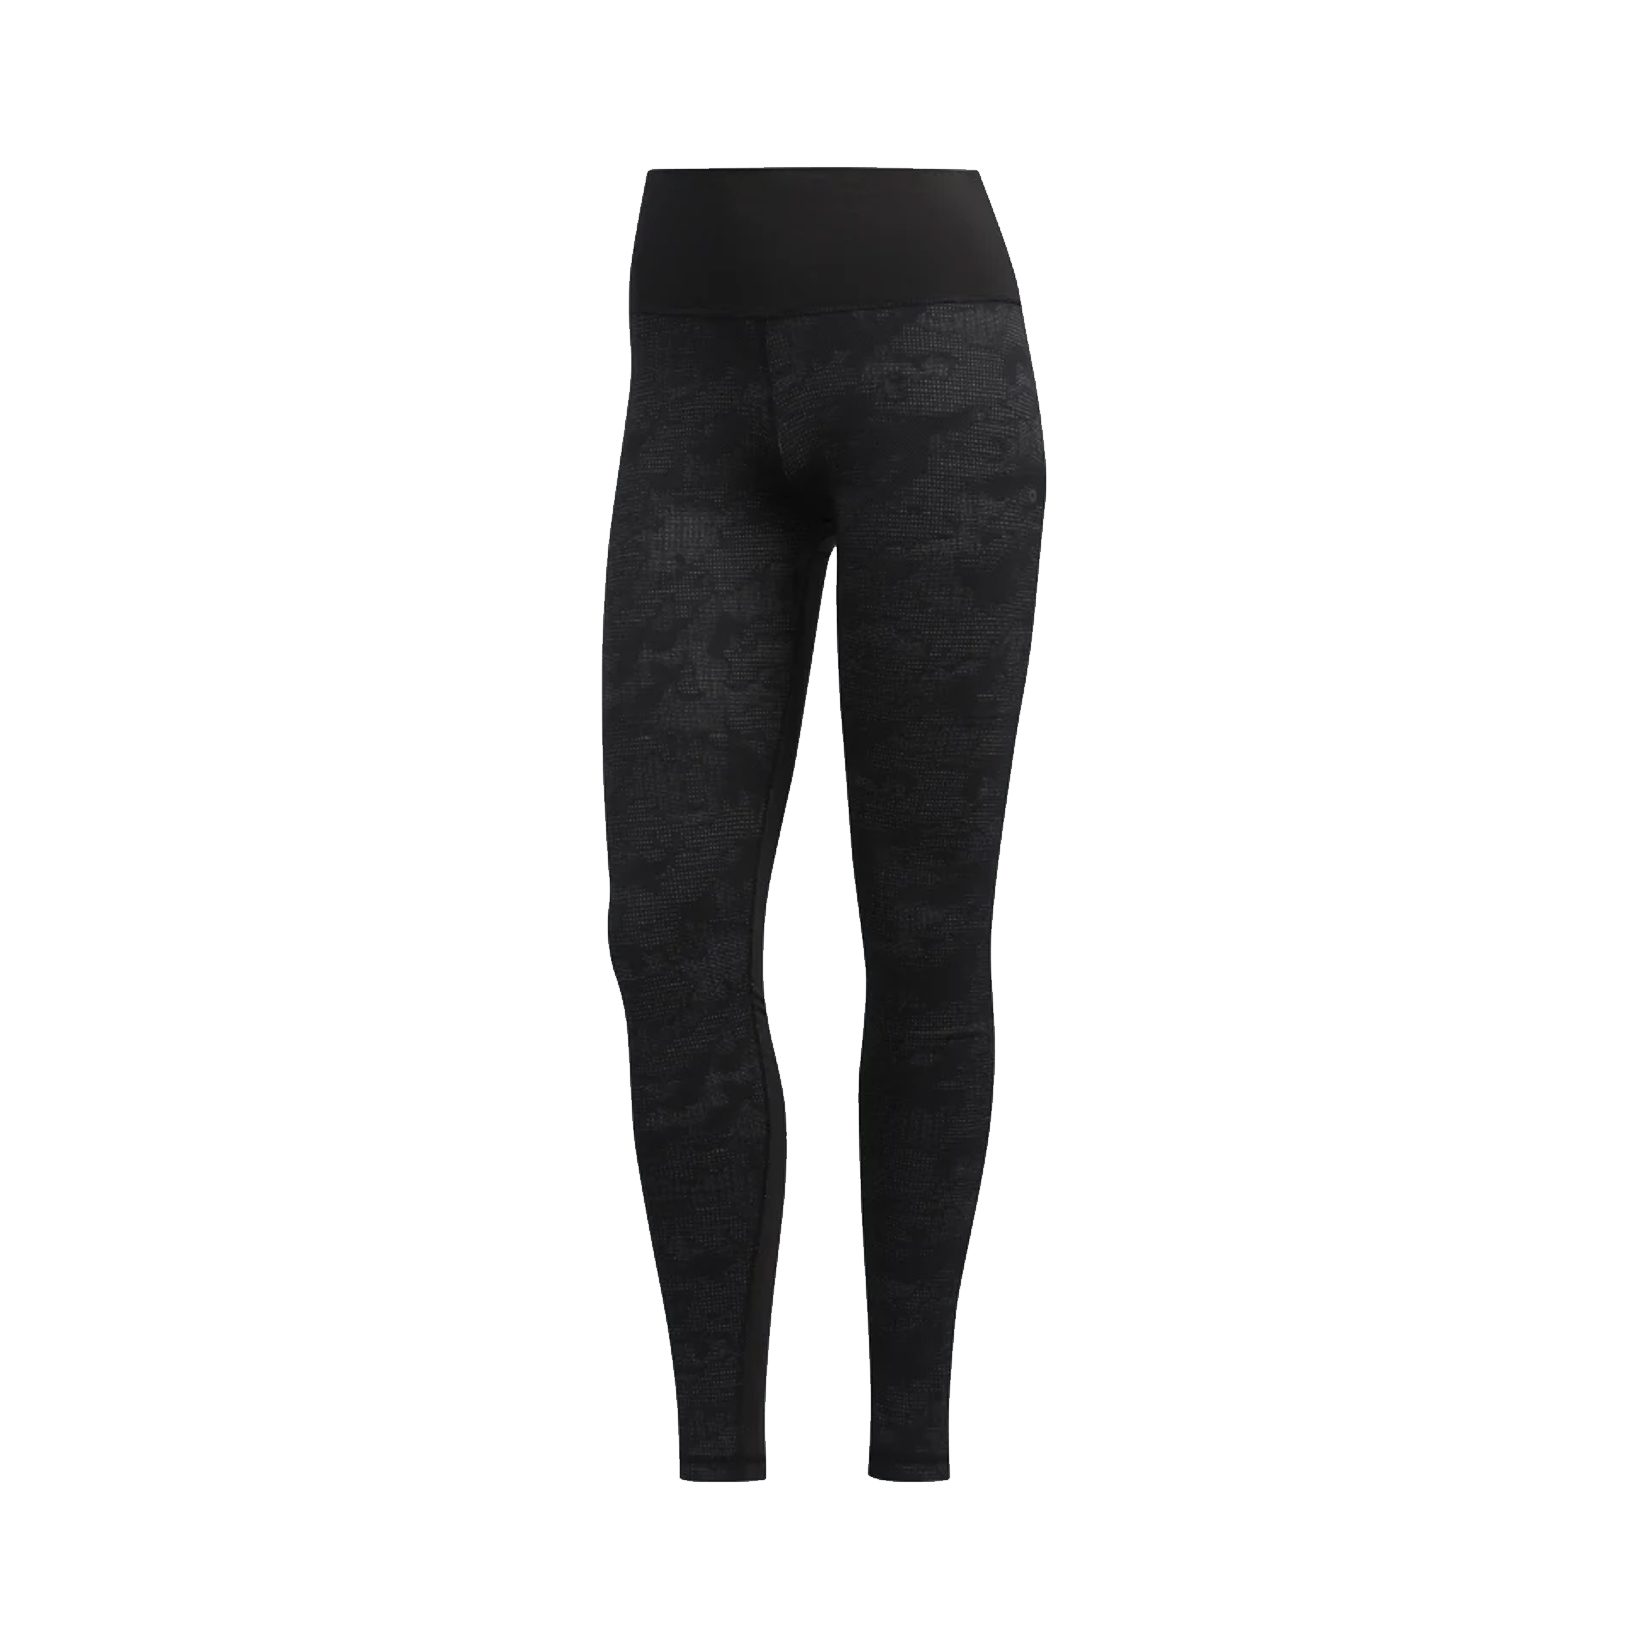 Adidas Believes This Camouflage Jacquard Tights Black